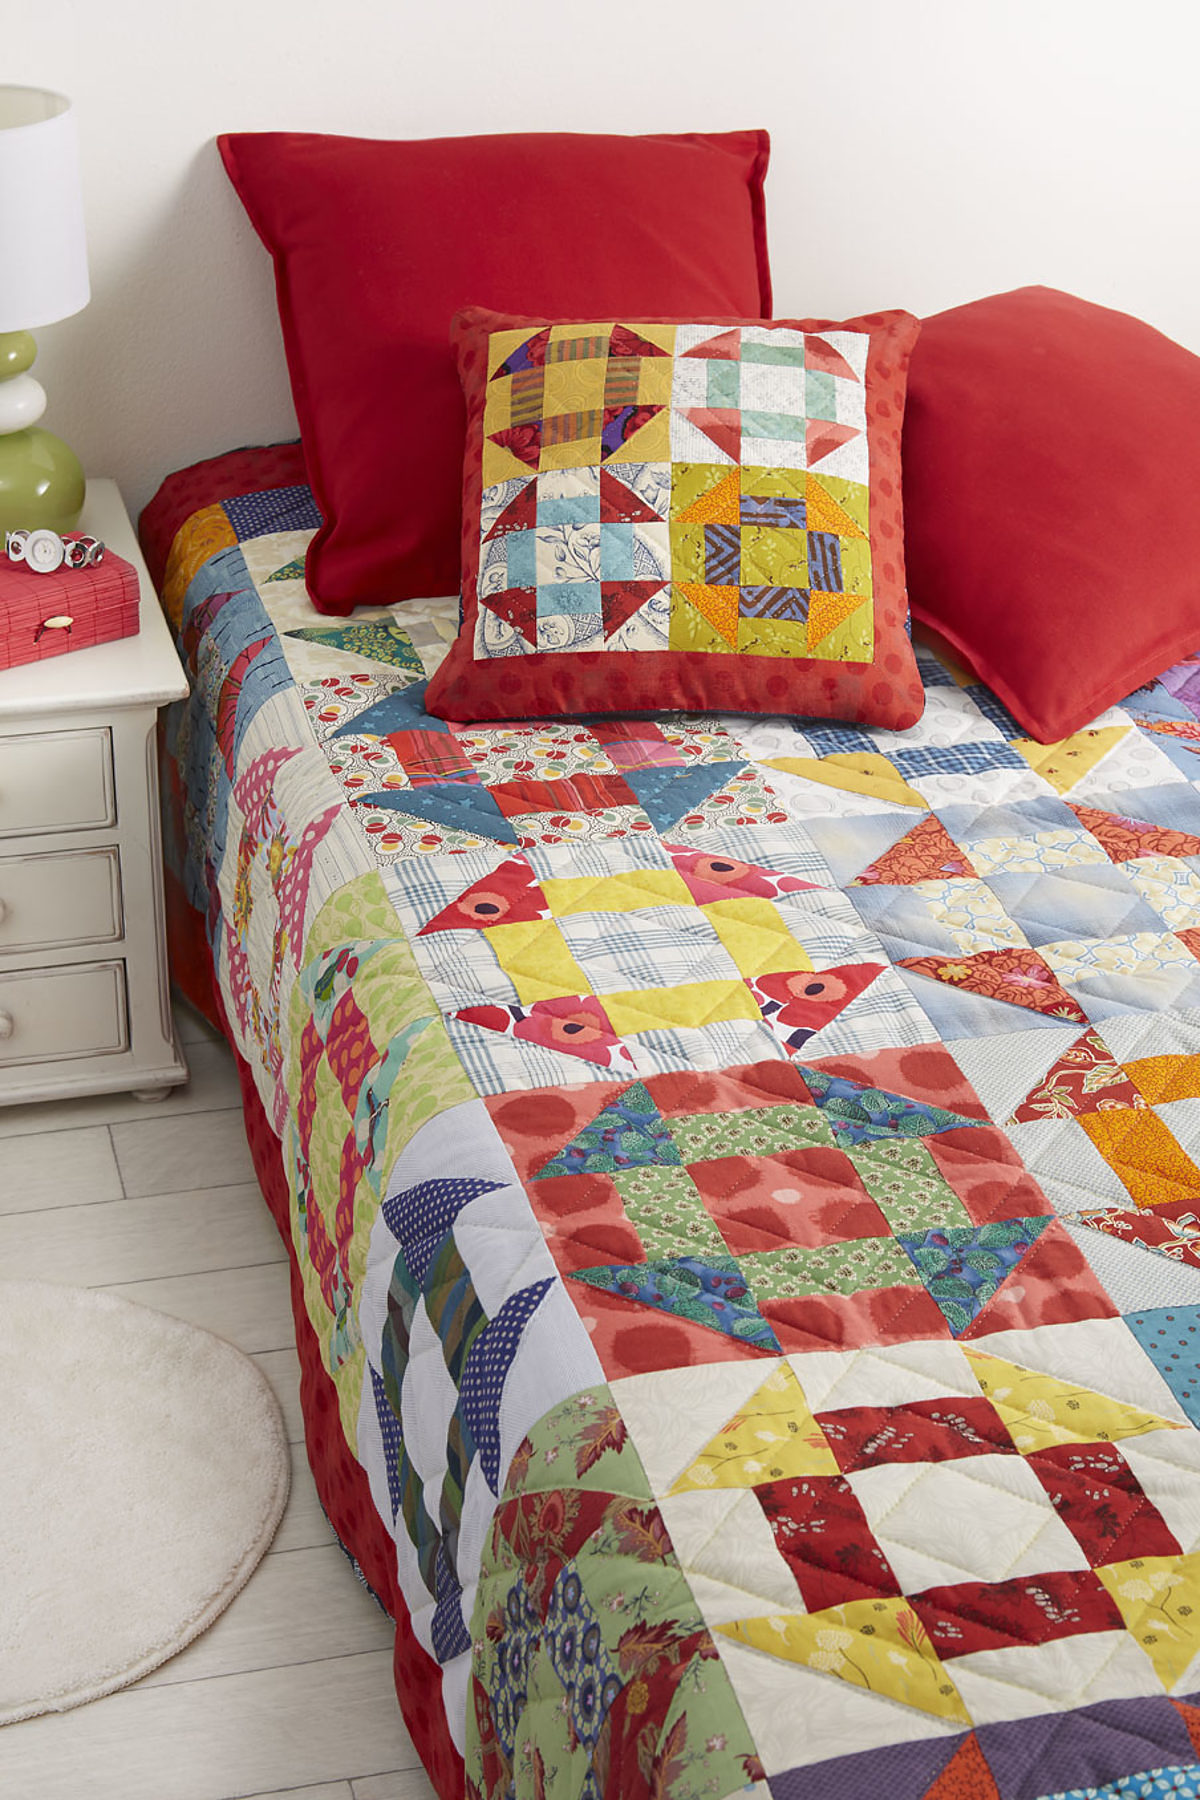 patchwork coussin barattes cosabeth parriaud